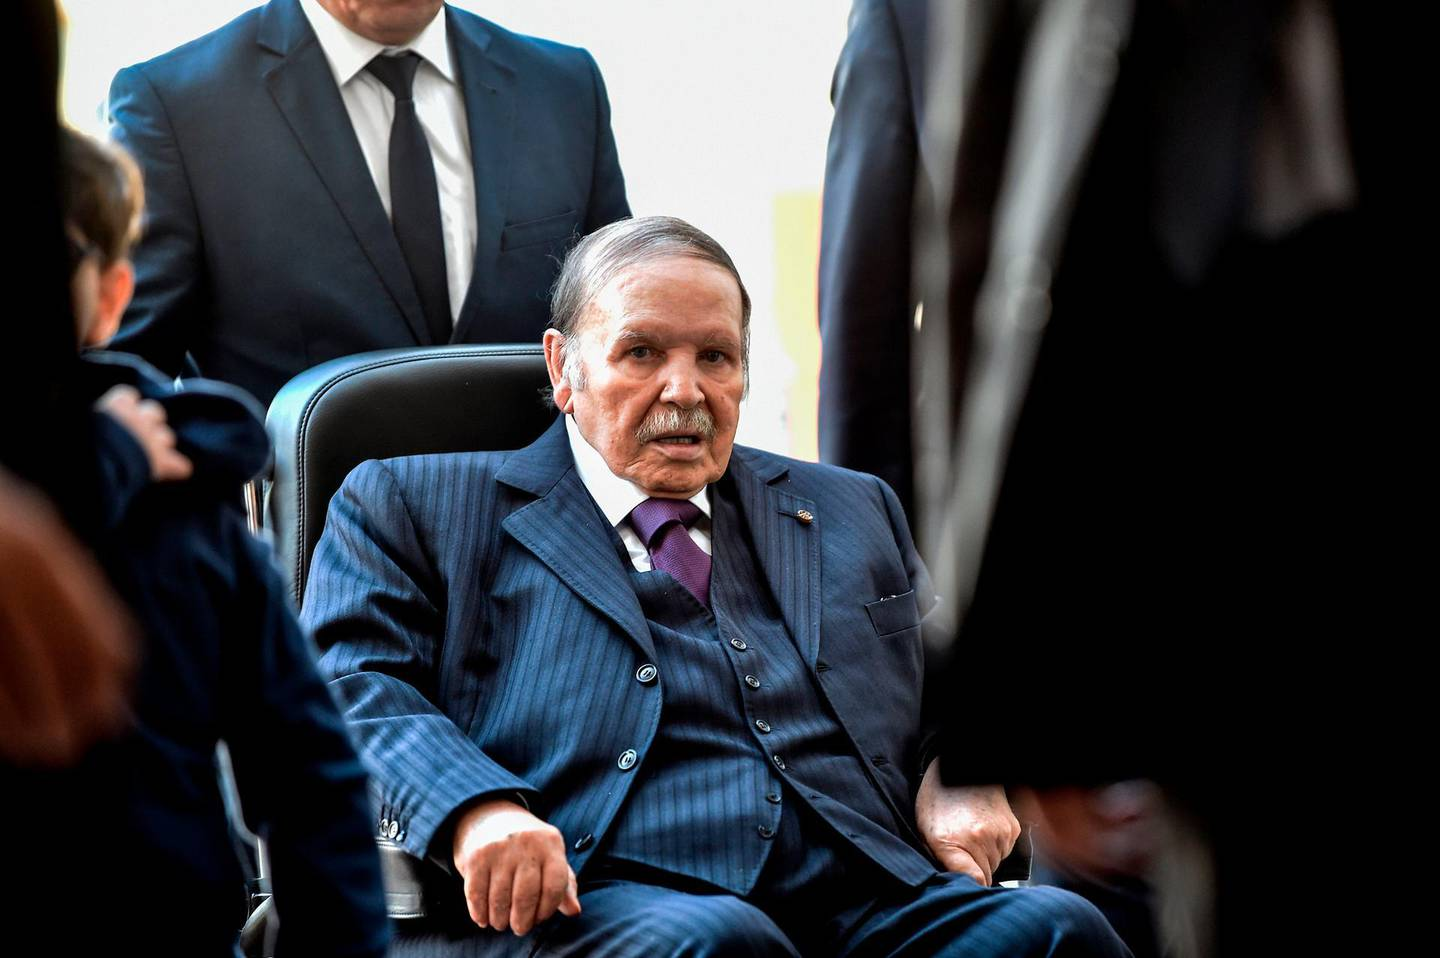 (FILES) In this file photo taken on November 23, 2017, Algerian President Abdelaziz Bouteflika is seen while voting at a polling station in the capital Algiers during polls for local elections.  Algeria's President Abdelaziz Bouteflika announced on March 11, 2019 his withdrawal from a bid to win another term in office and postponed an April 18 election, following weeks of protests against his candidacy. Bouteflika, in a message carried by national news agency APS, said the presidential poll would follow a national conference on political and constitutional reform to be drawn up by the end of 2019. / AFP / RYAD KRAMDI